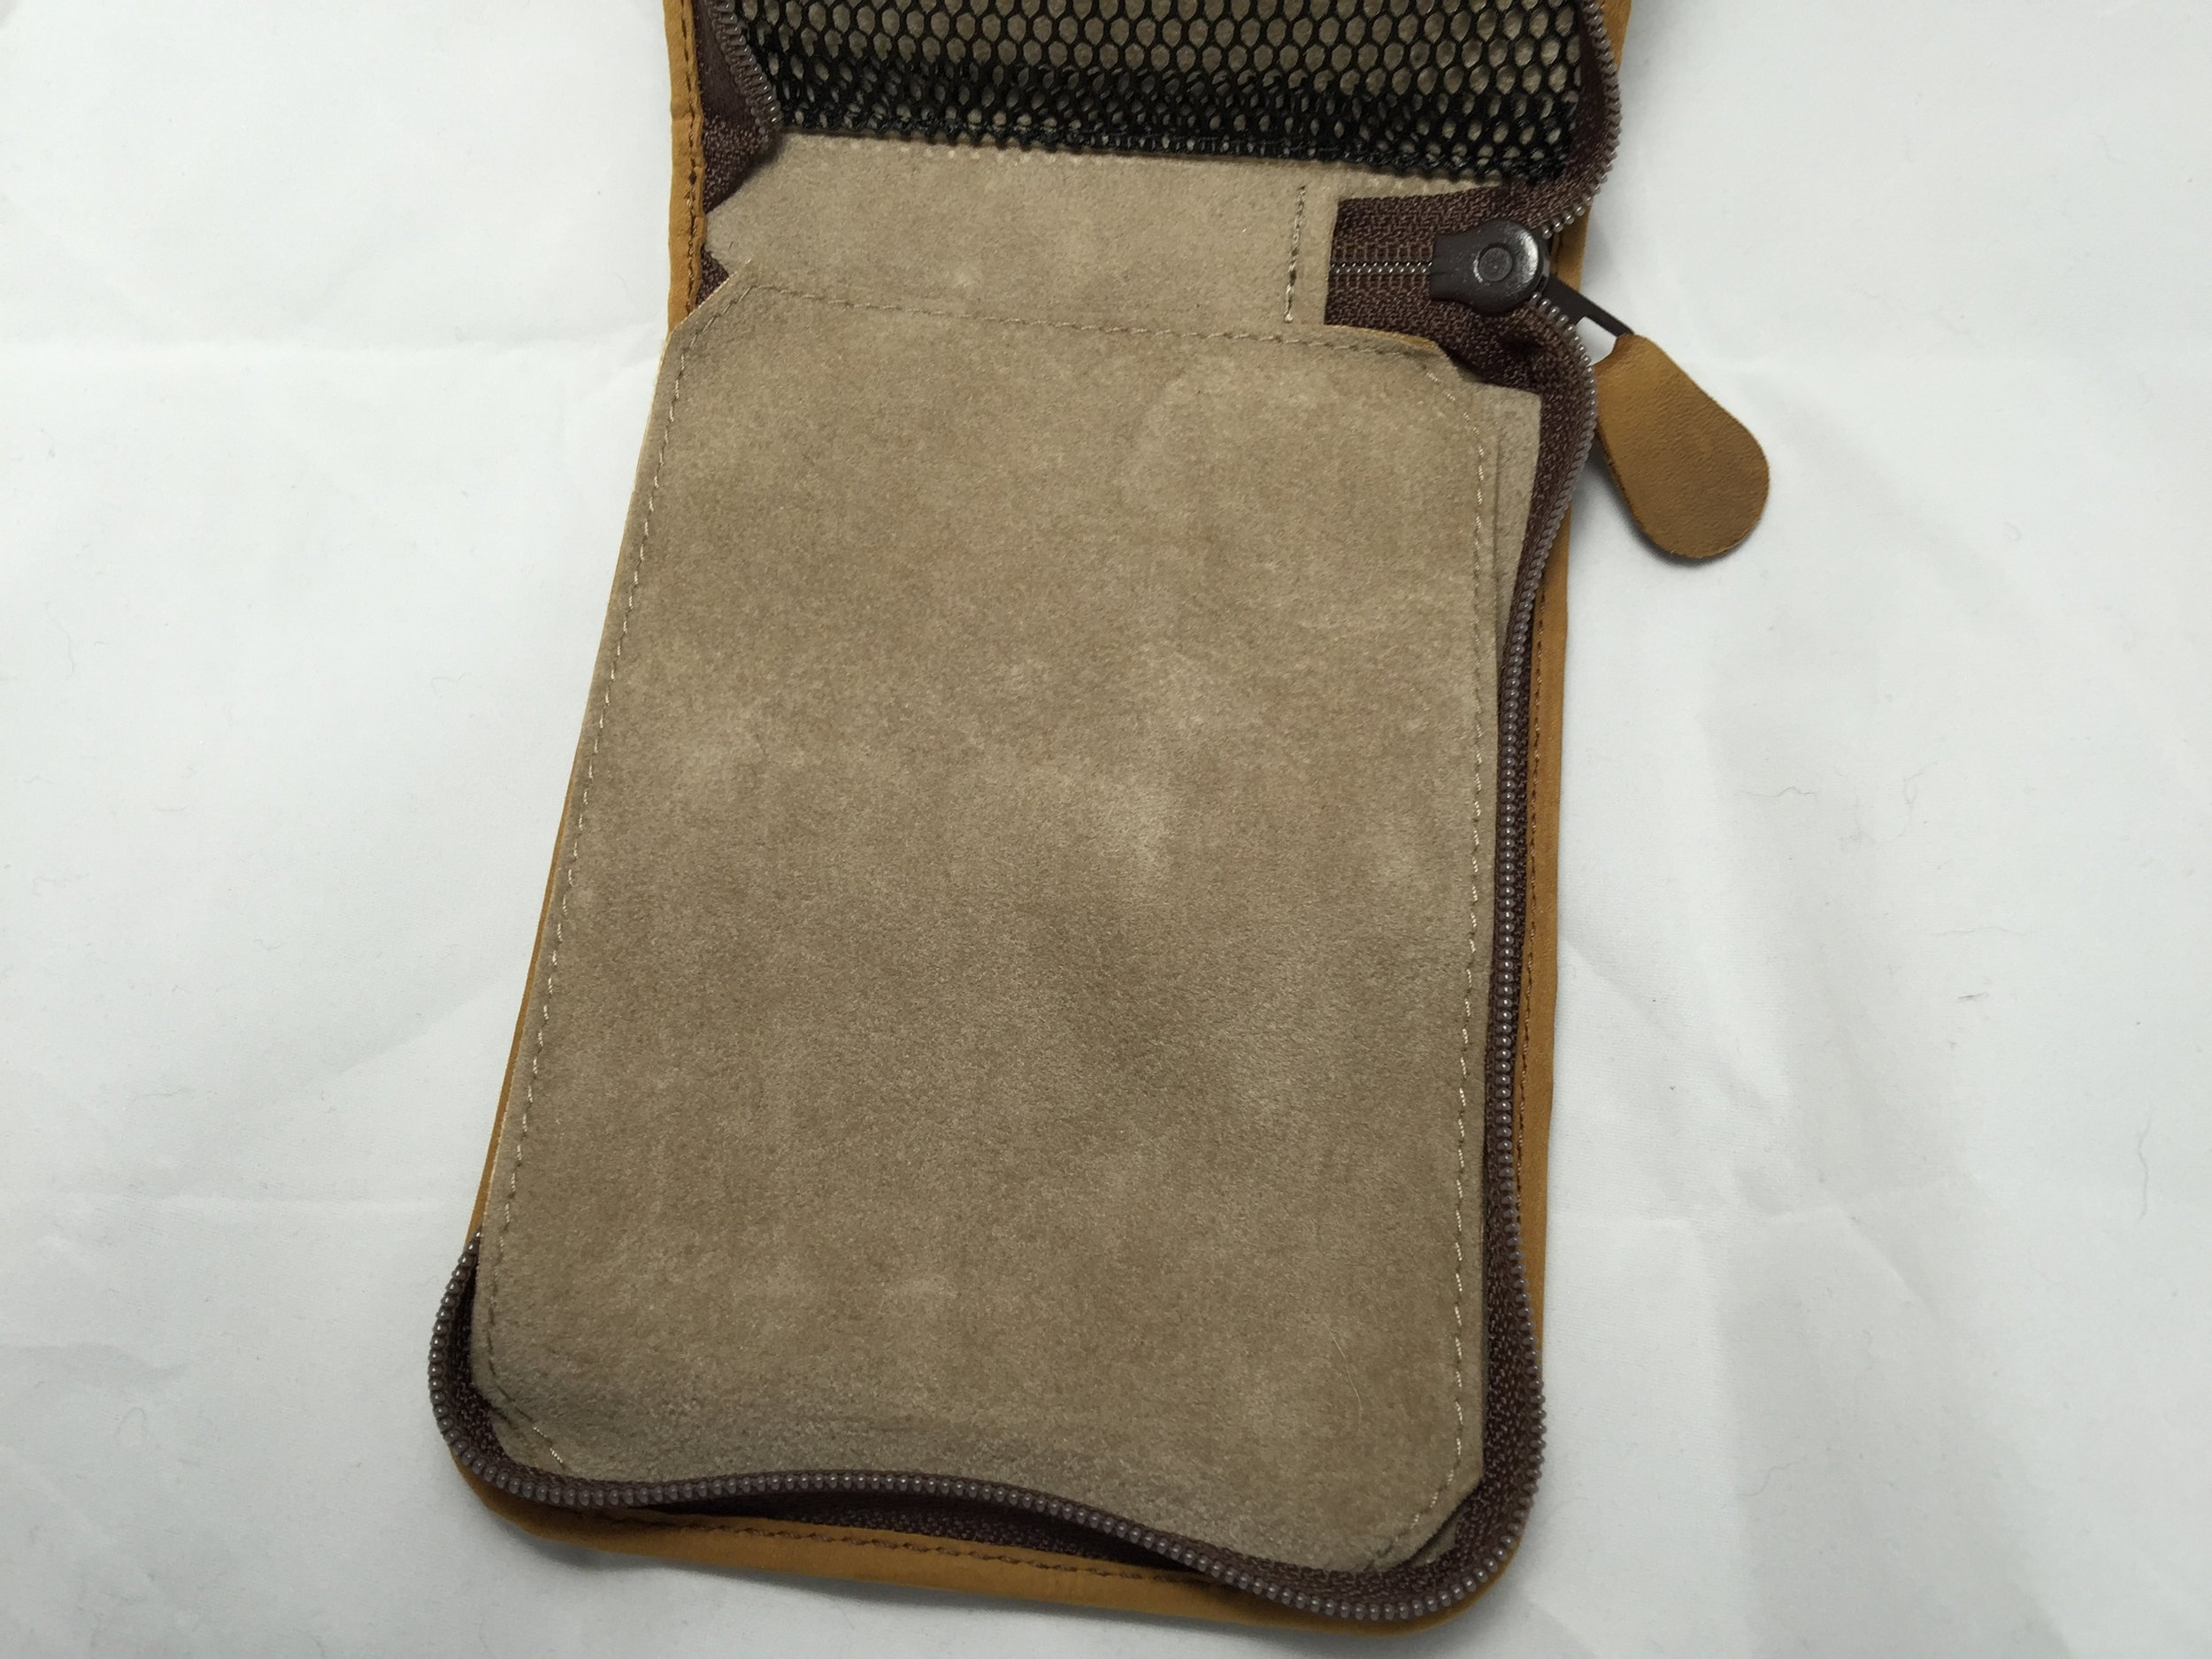 The flap lays off-center, to the left, even when pulled tight without pens in the case.